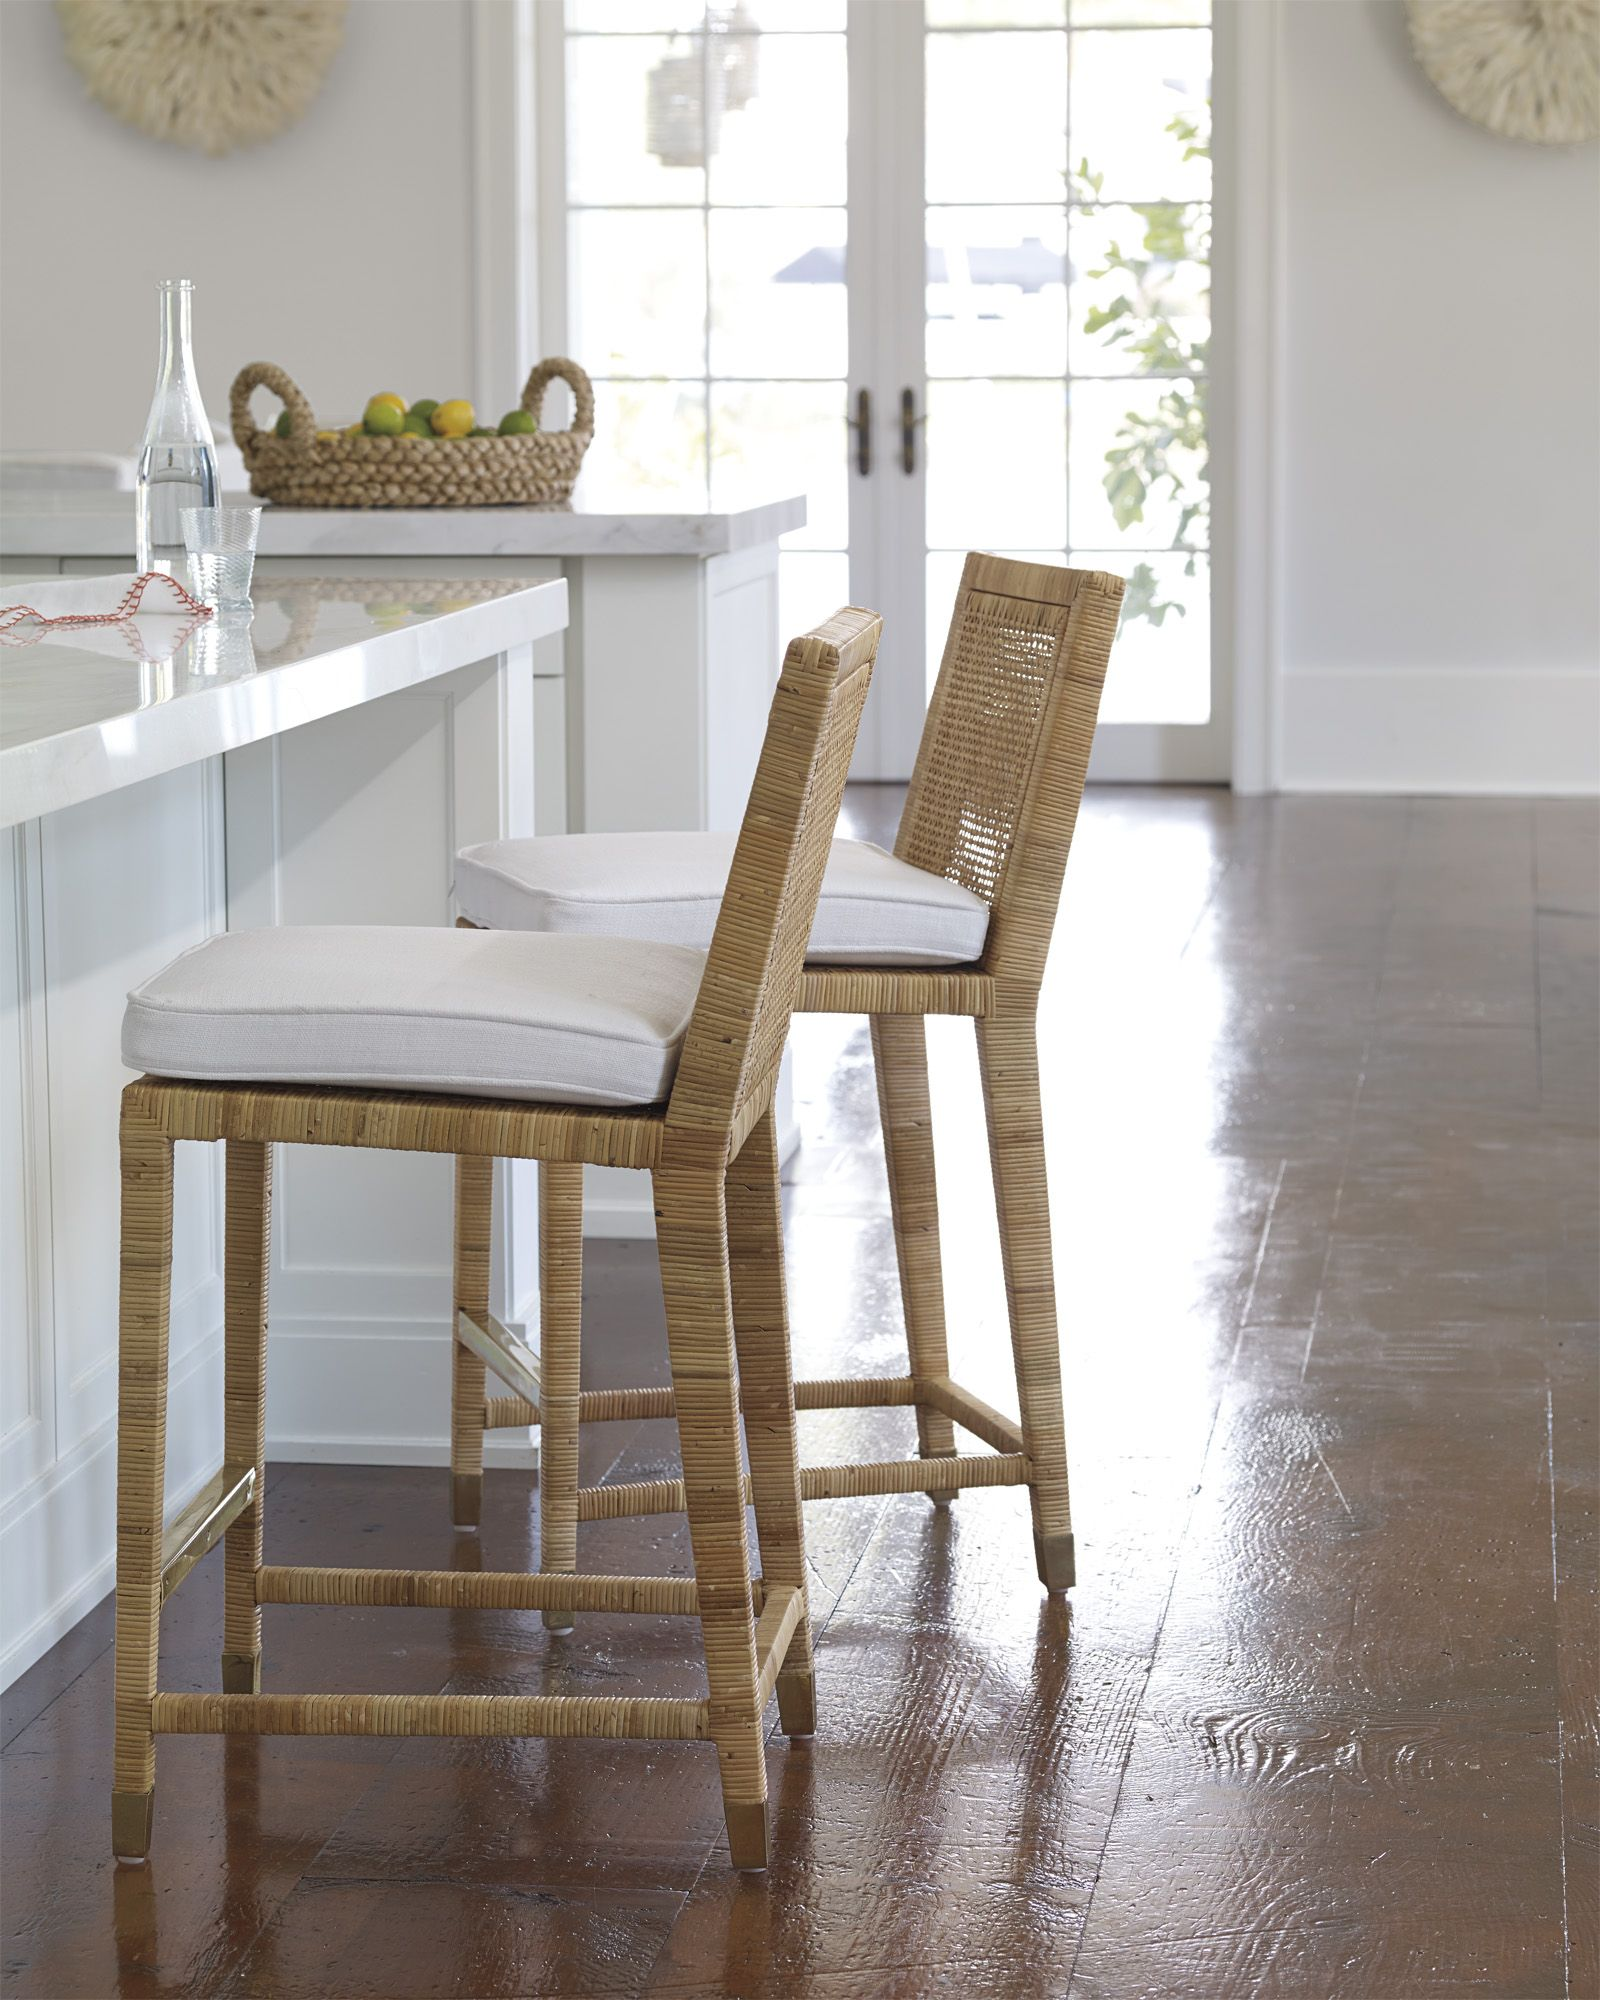 Kitchen Stools Balboa Counter Stool With Cushion Serenaandlily